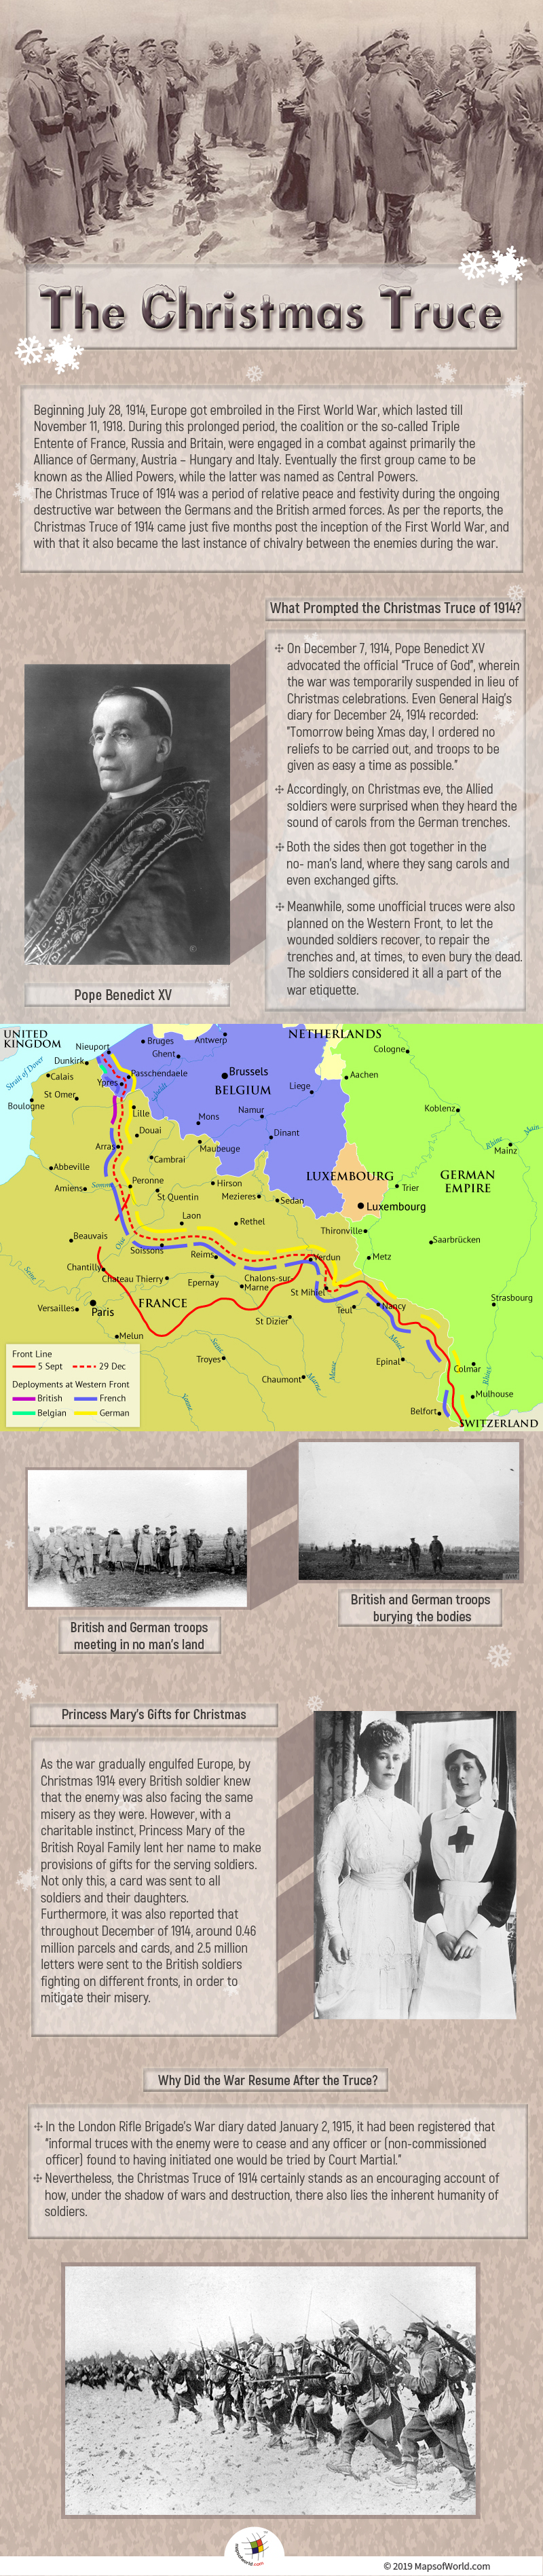 Infographic Giving Details on The Christmas Truce 1914